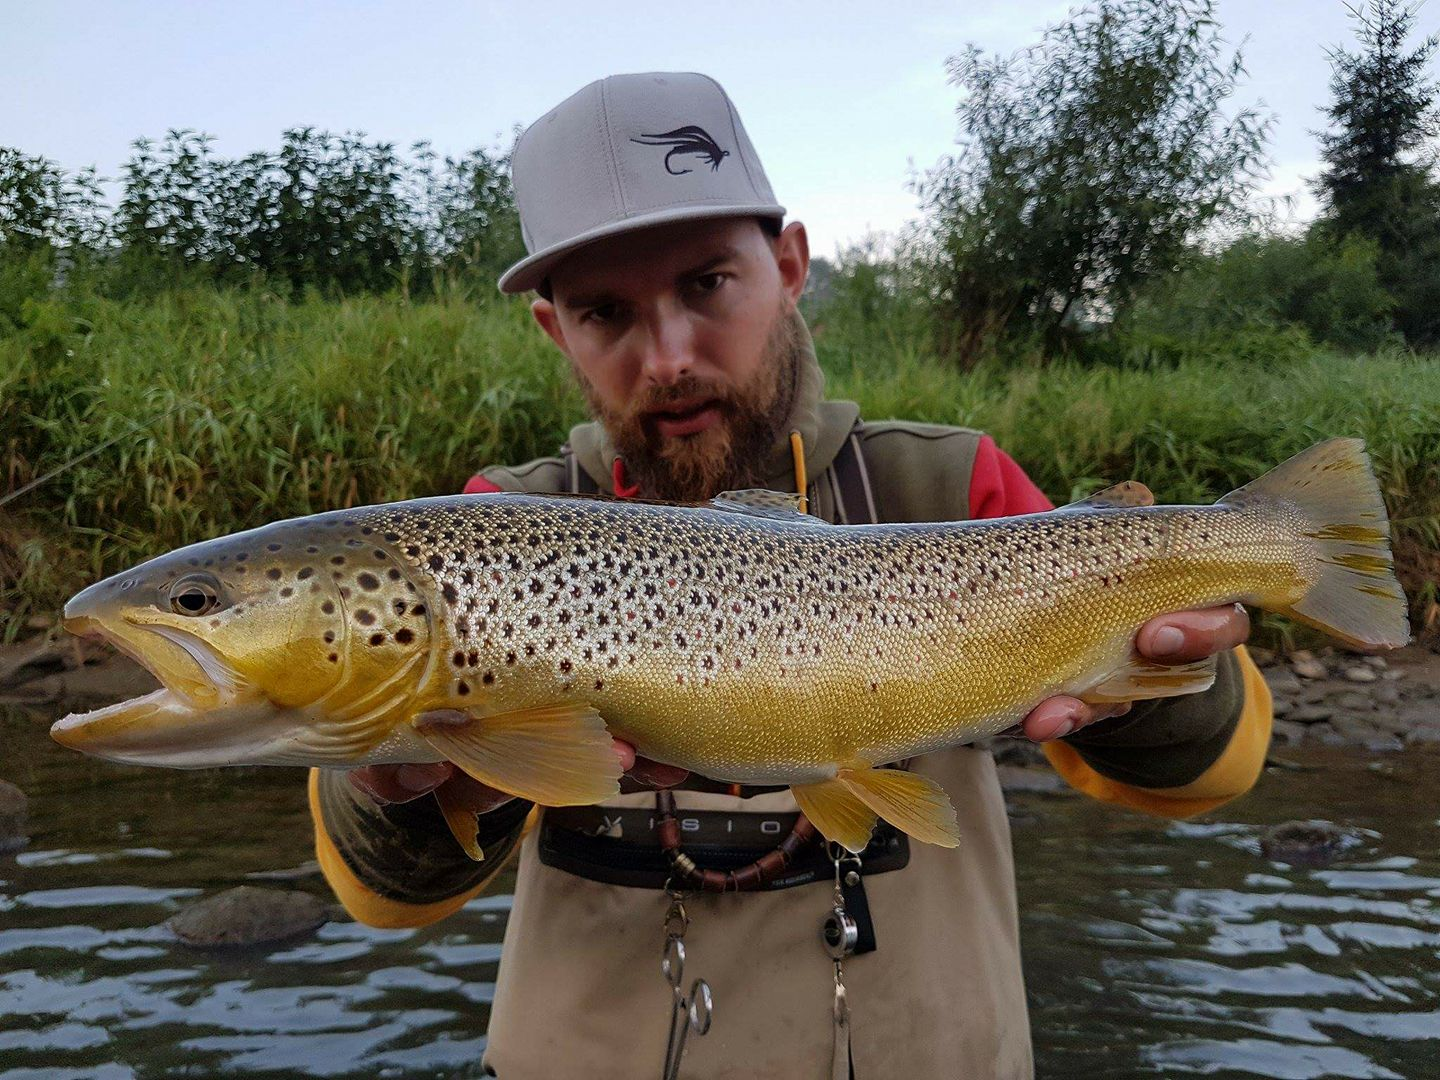 Vision rod helped a lot when catching tkat brown trout